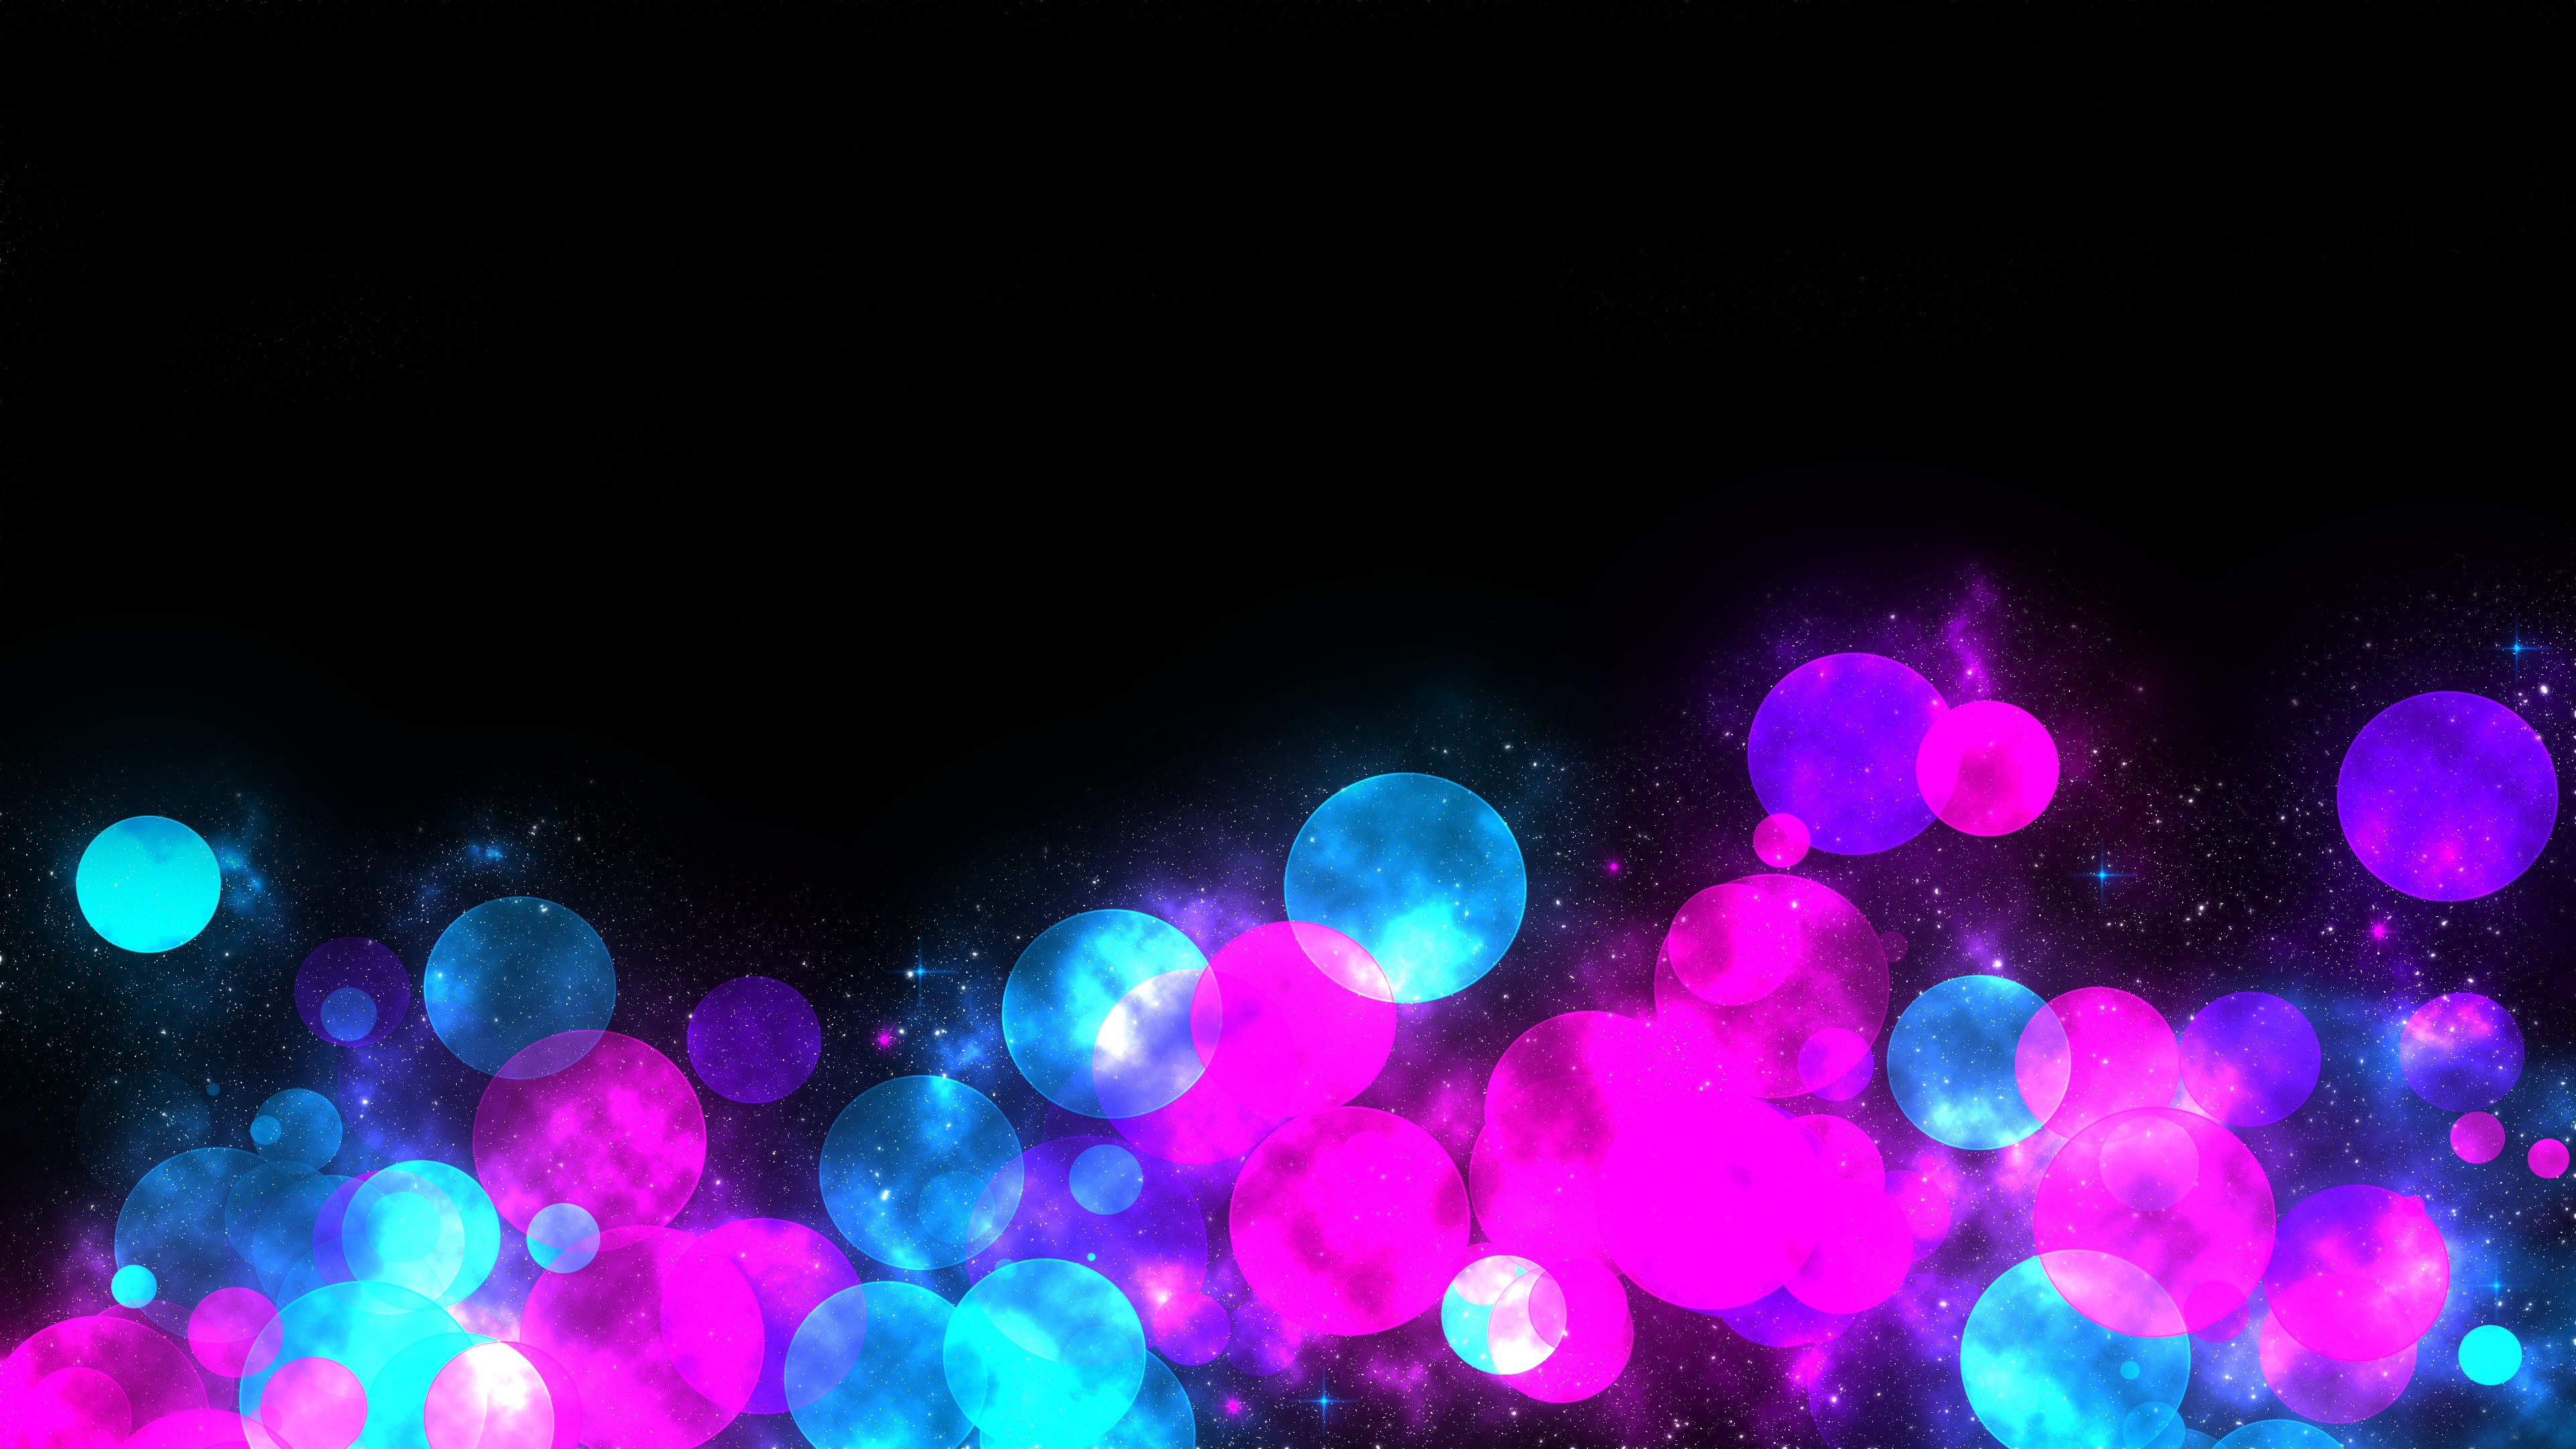 3840x2160 pink and blue balloons on a black background download little pink red stars black background